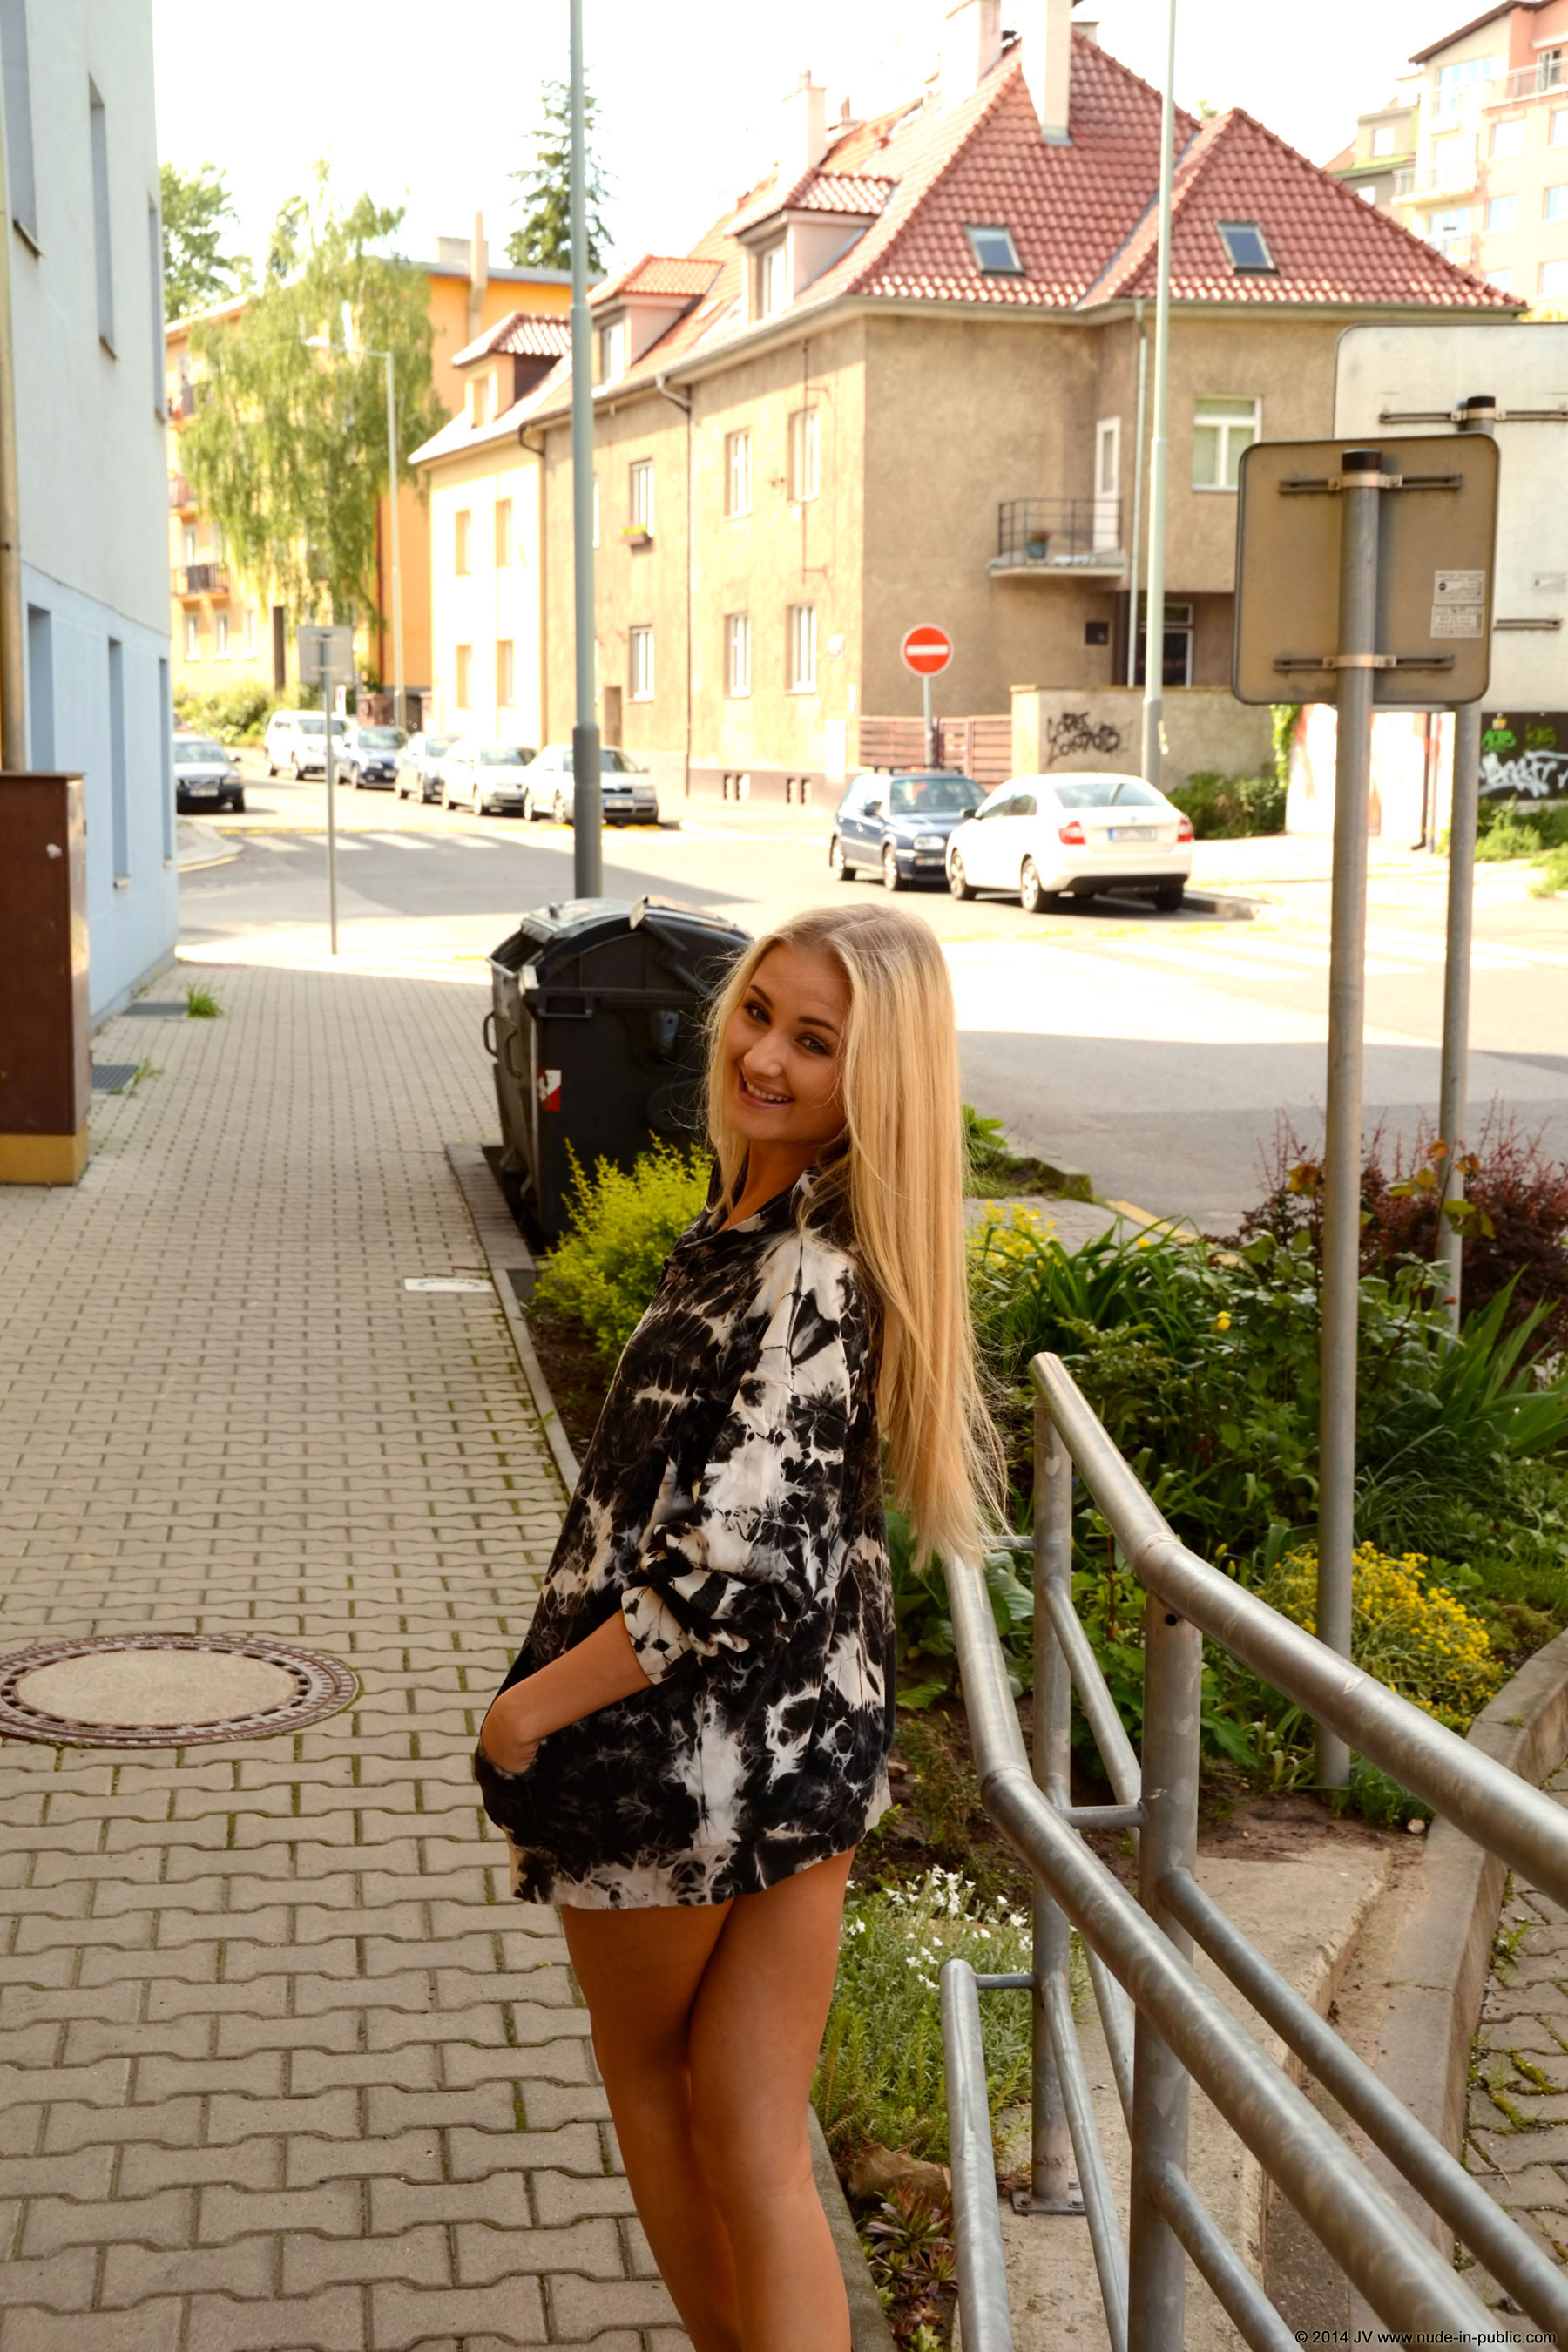 karolina-m-blonde-on-the-street-nude-in-public-06